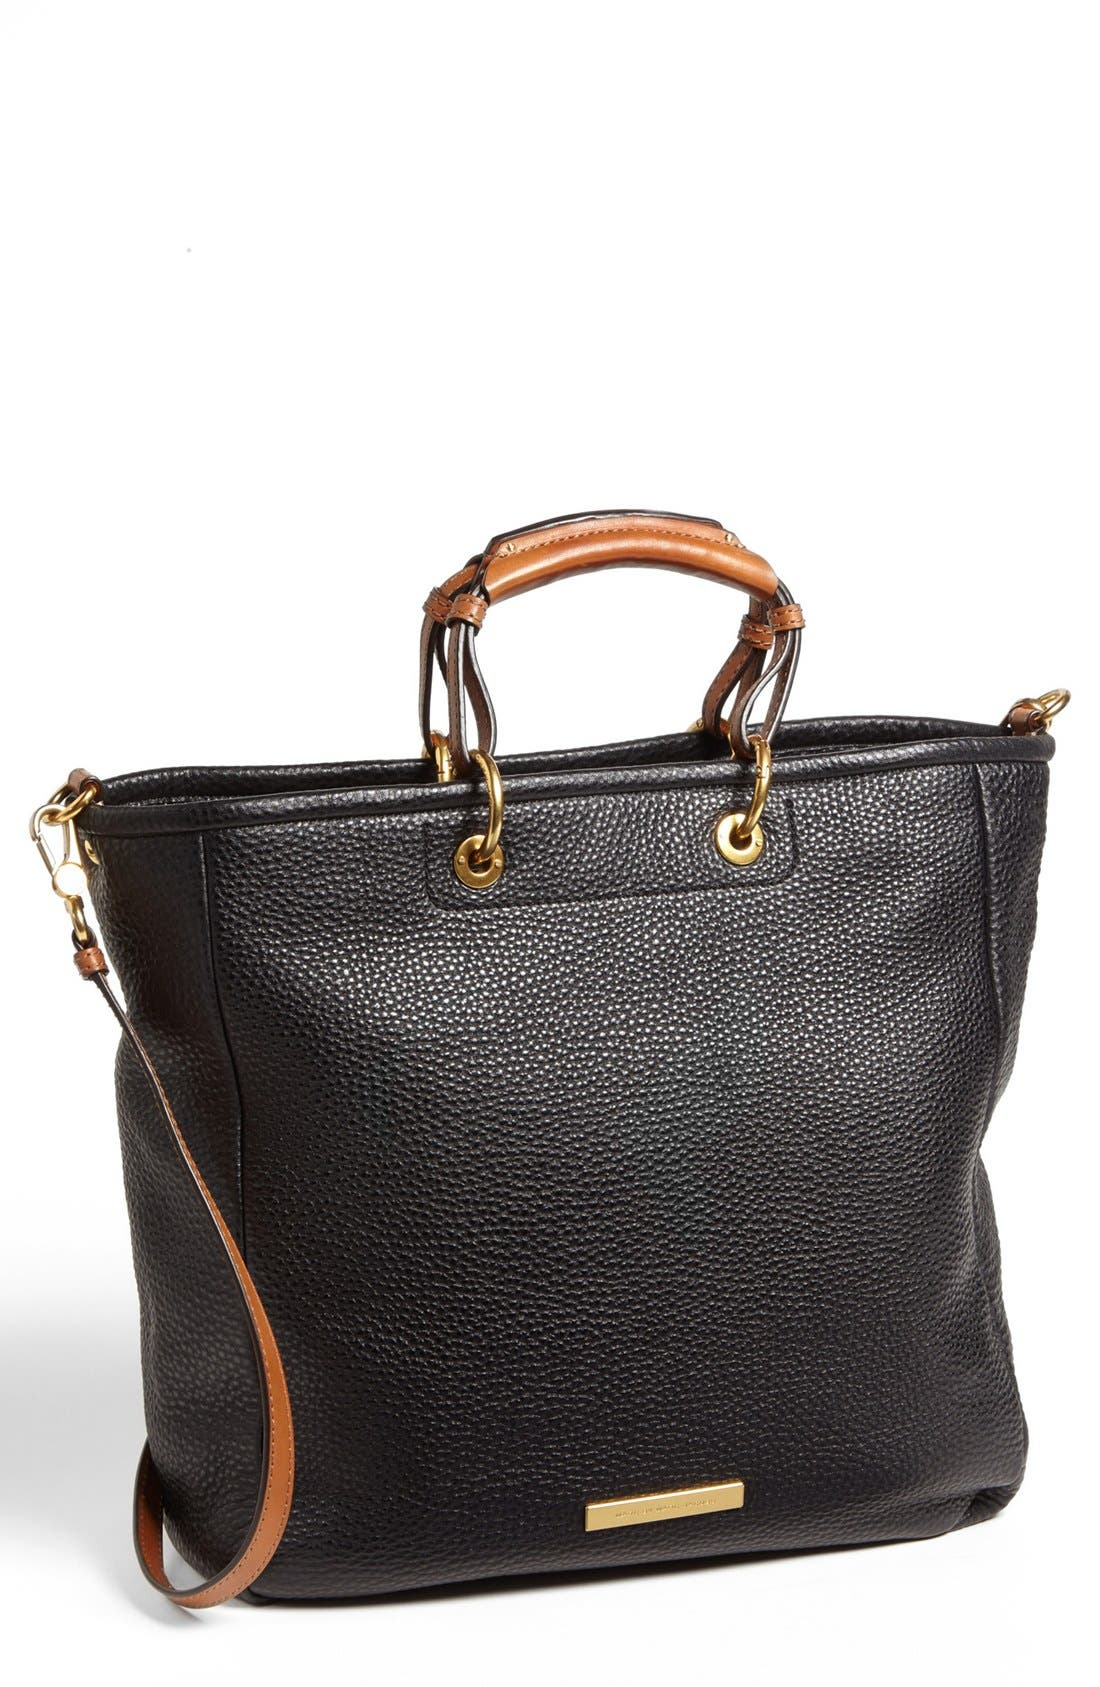 Main Image - MARC BY MARC JACOBS 'Softy Saddle' Leather Tote